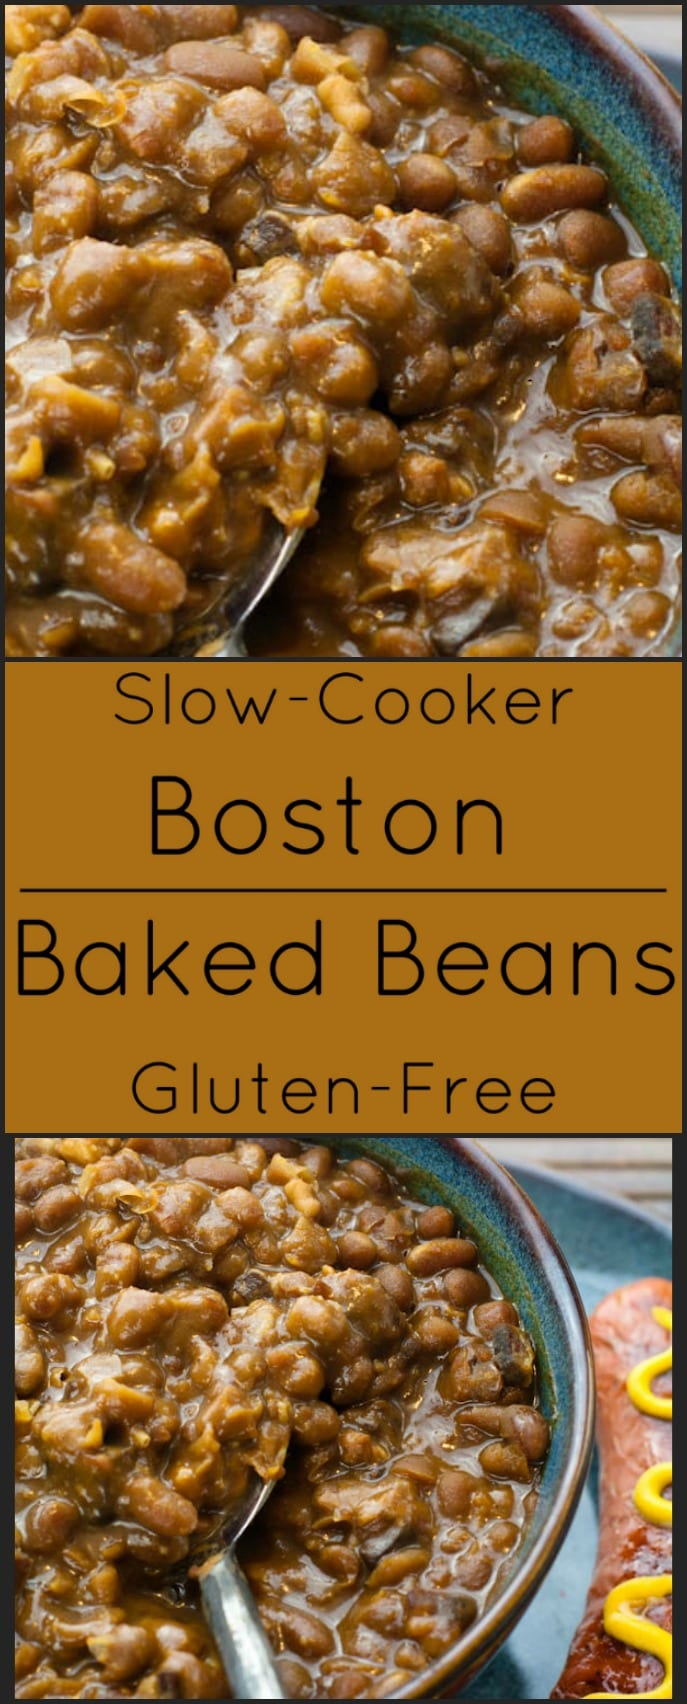 Slow-cooker Boston Baked Beans are the perfect accompaniment to any BBBQ. Naturally gluten free!